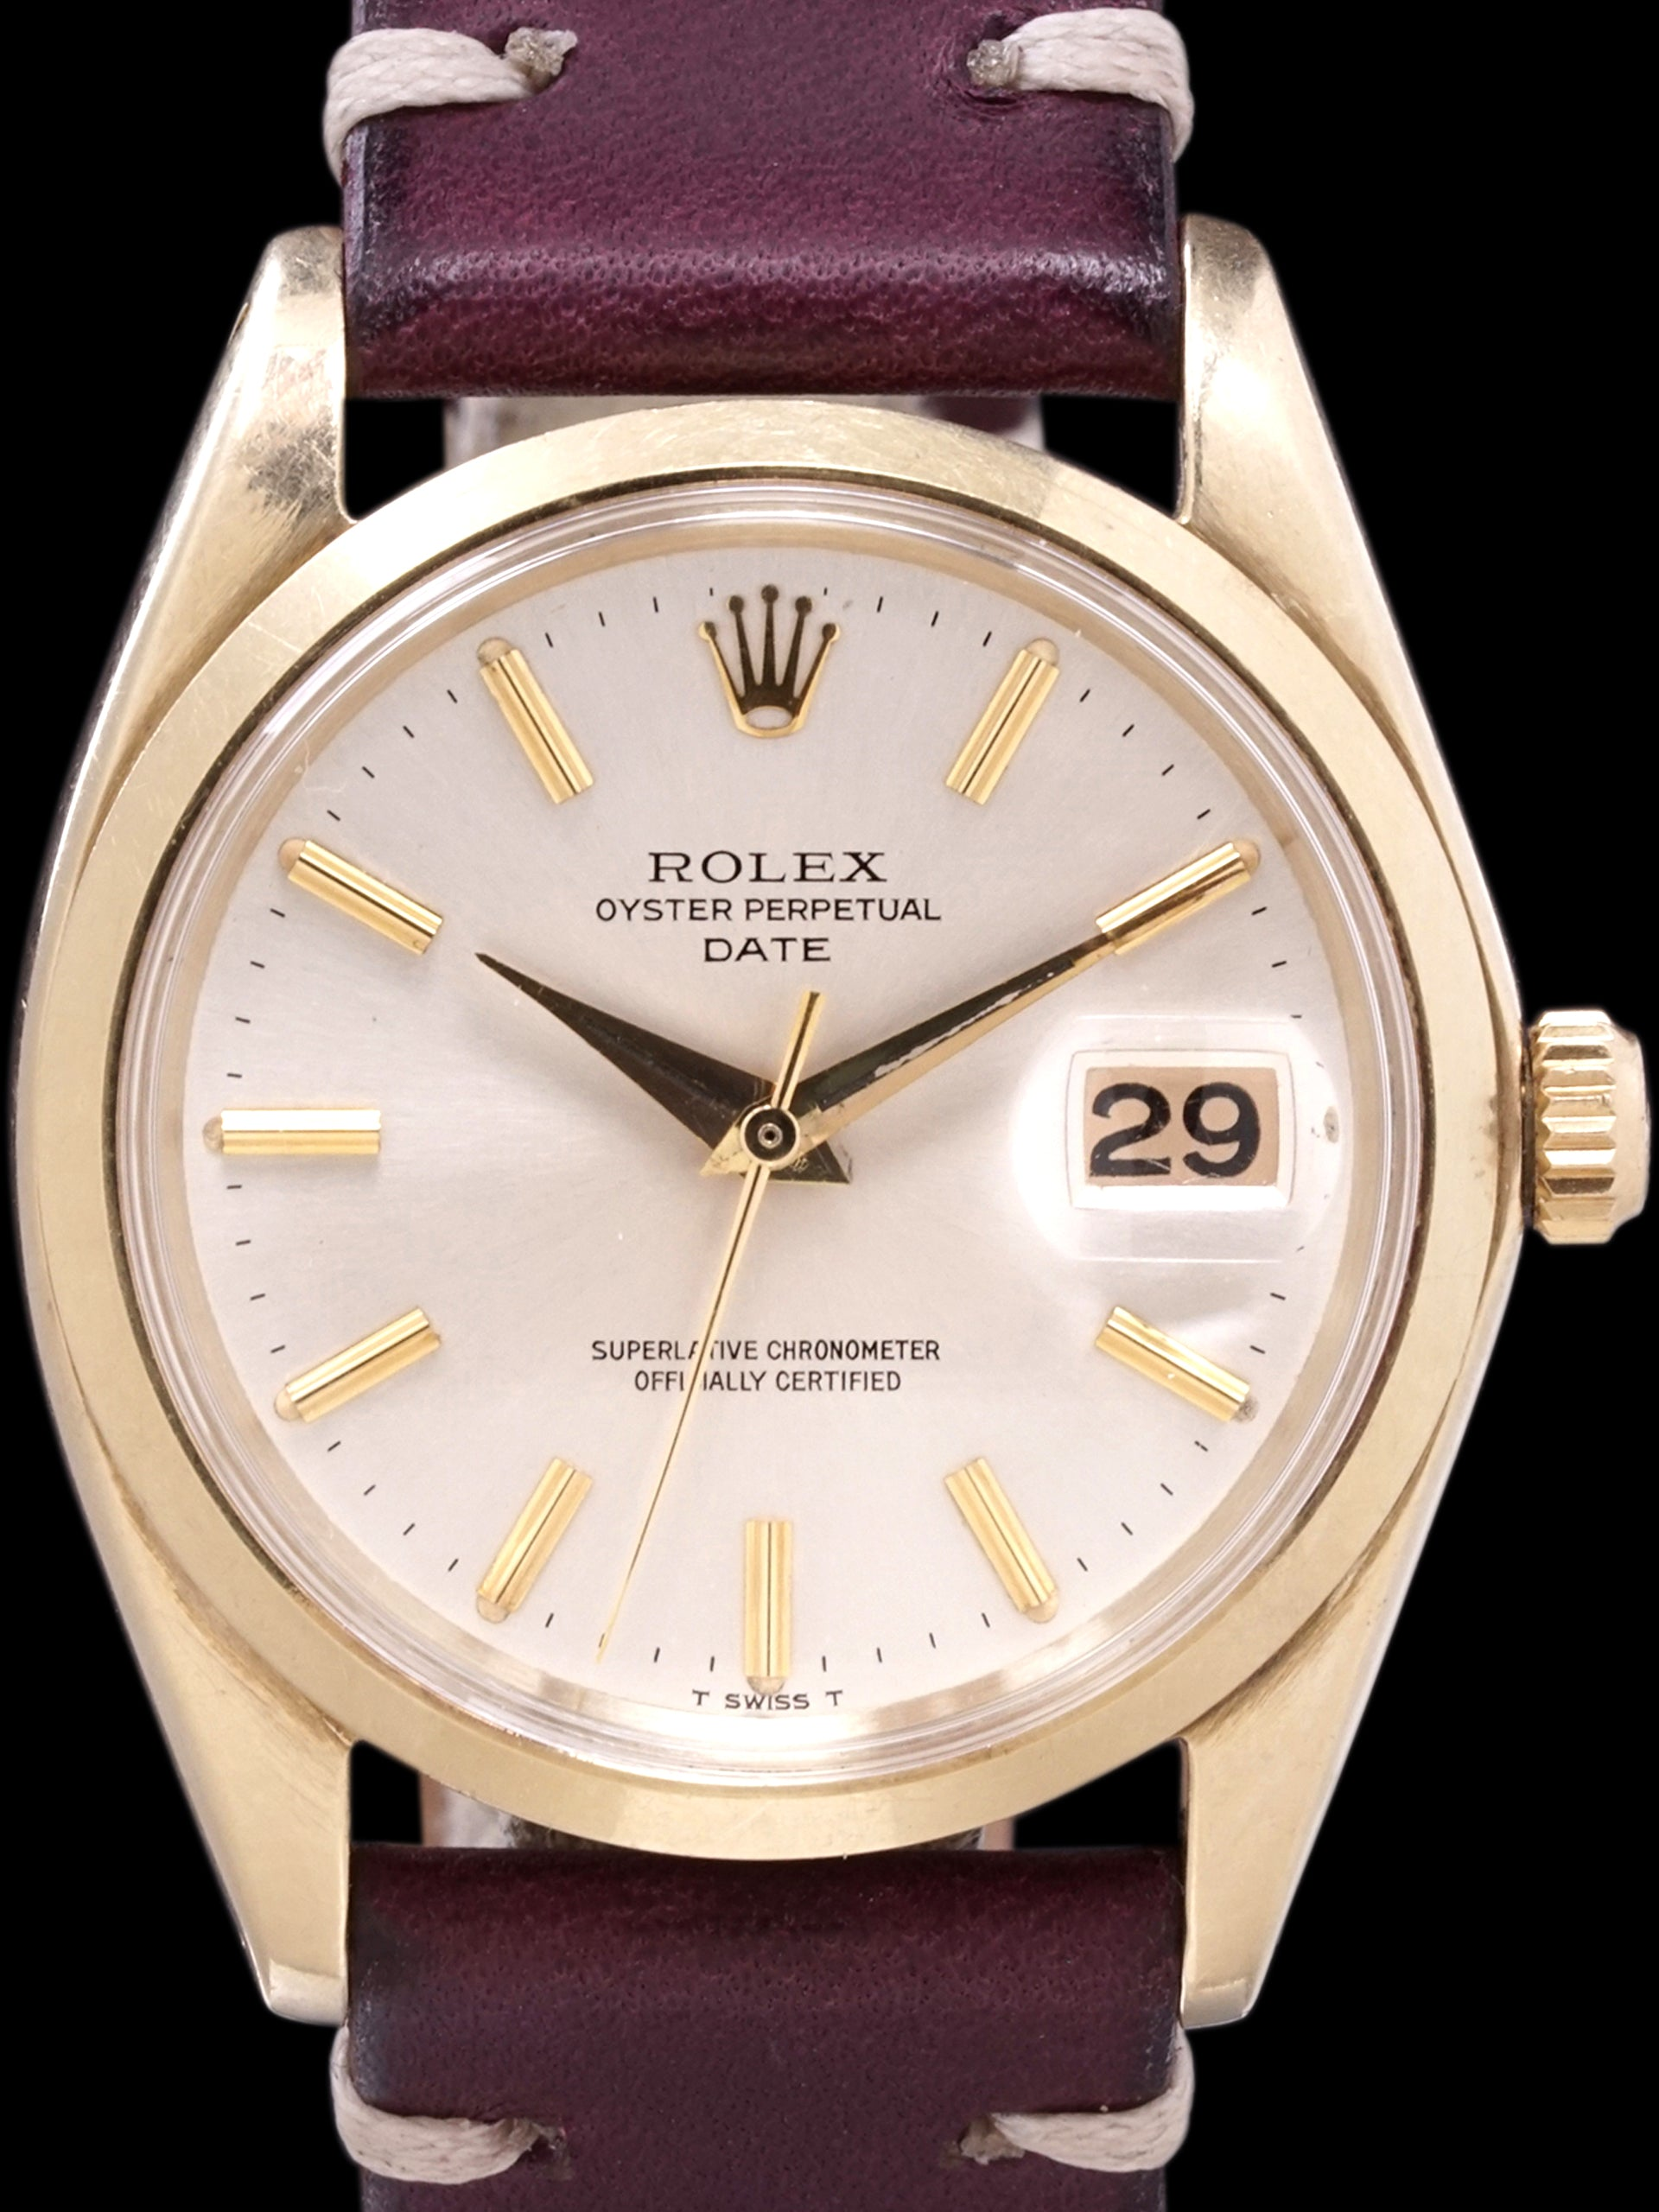 1965 Rolex Oyster-Perpetual Date (Ref. 1500) 14k YG